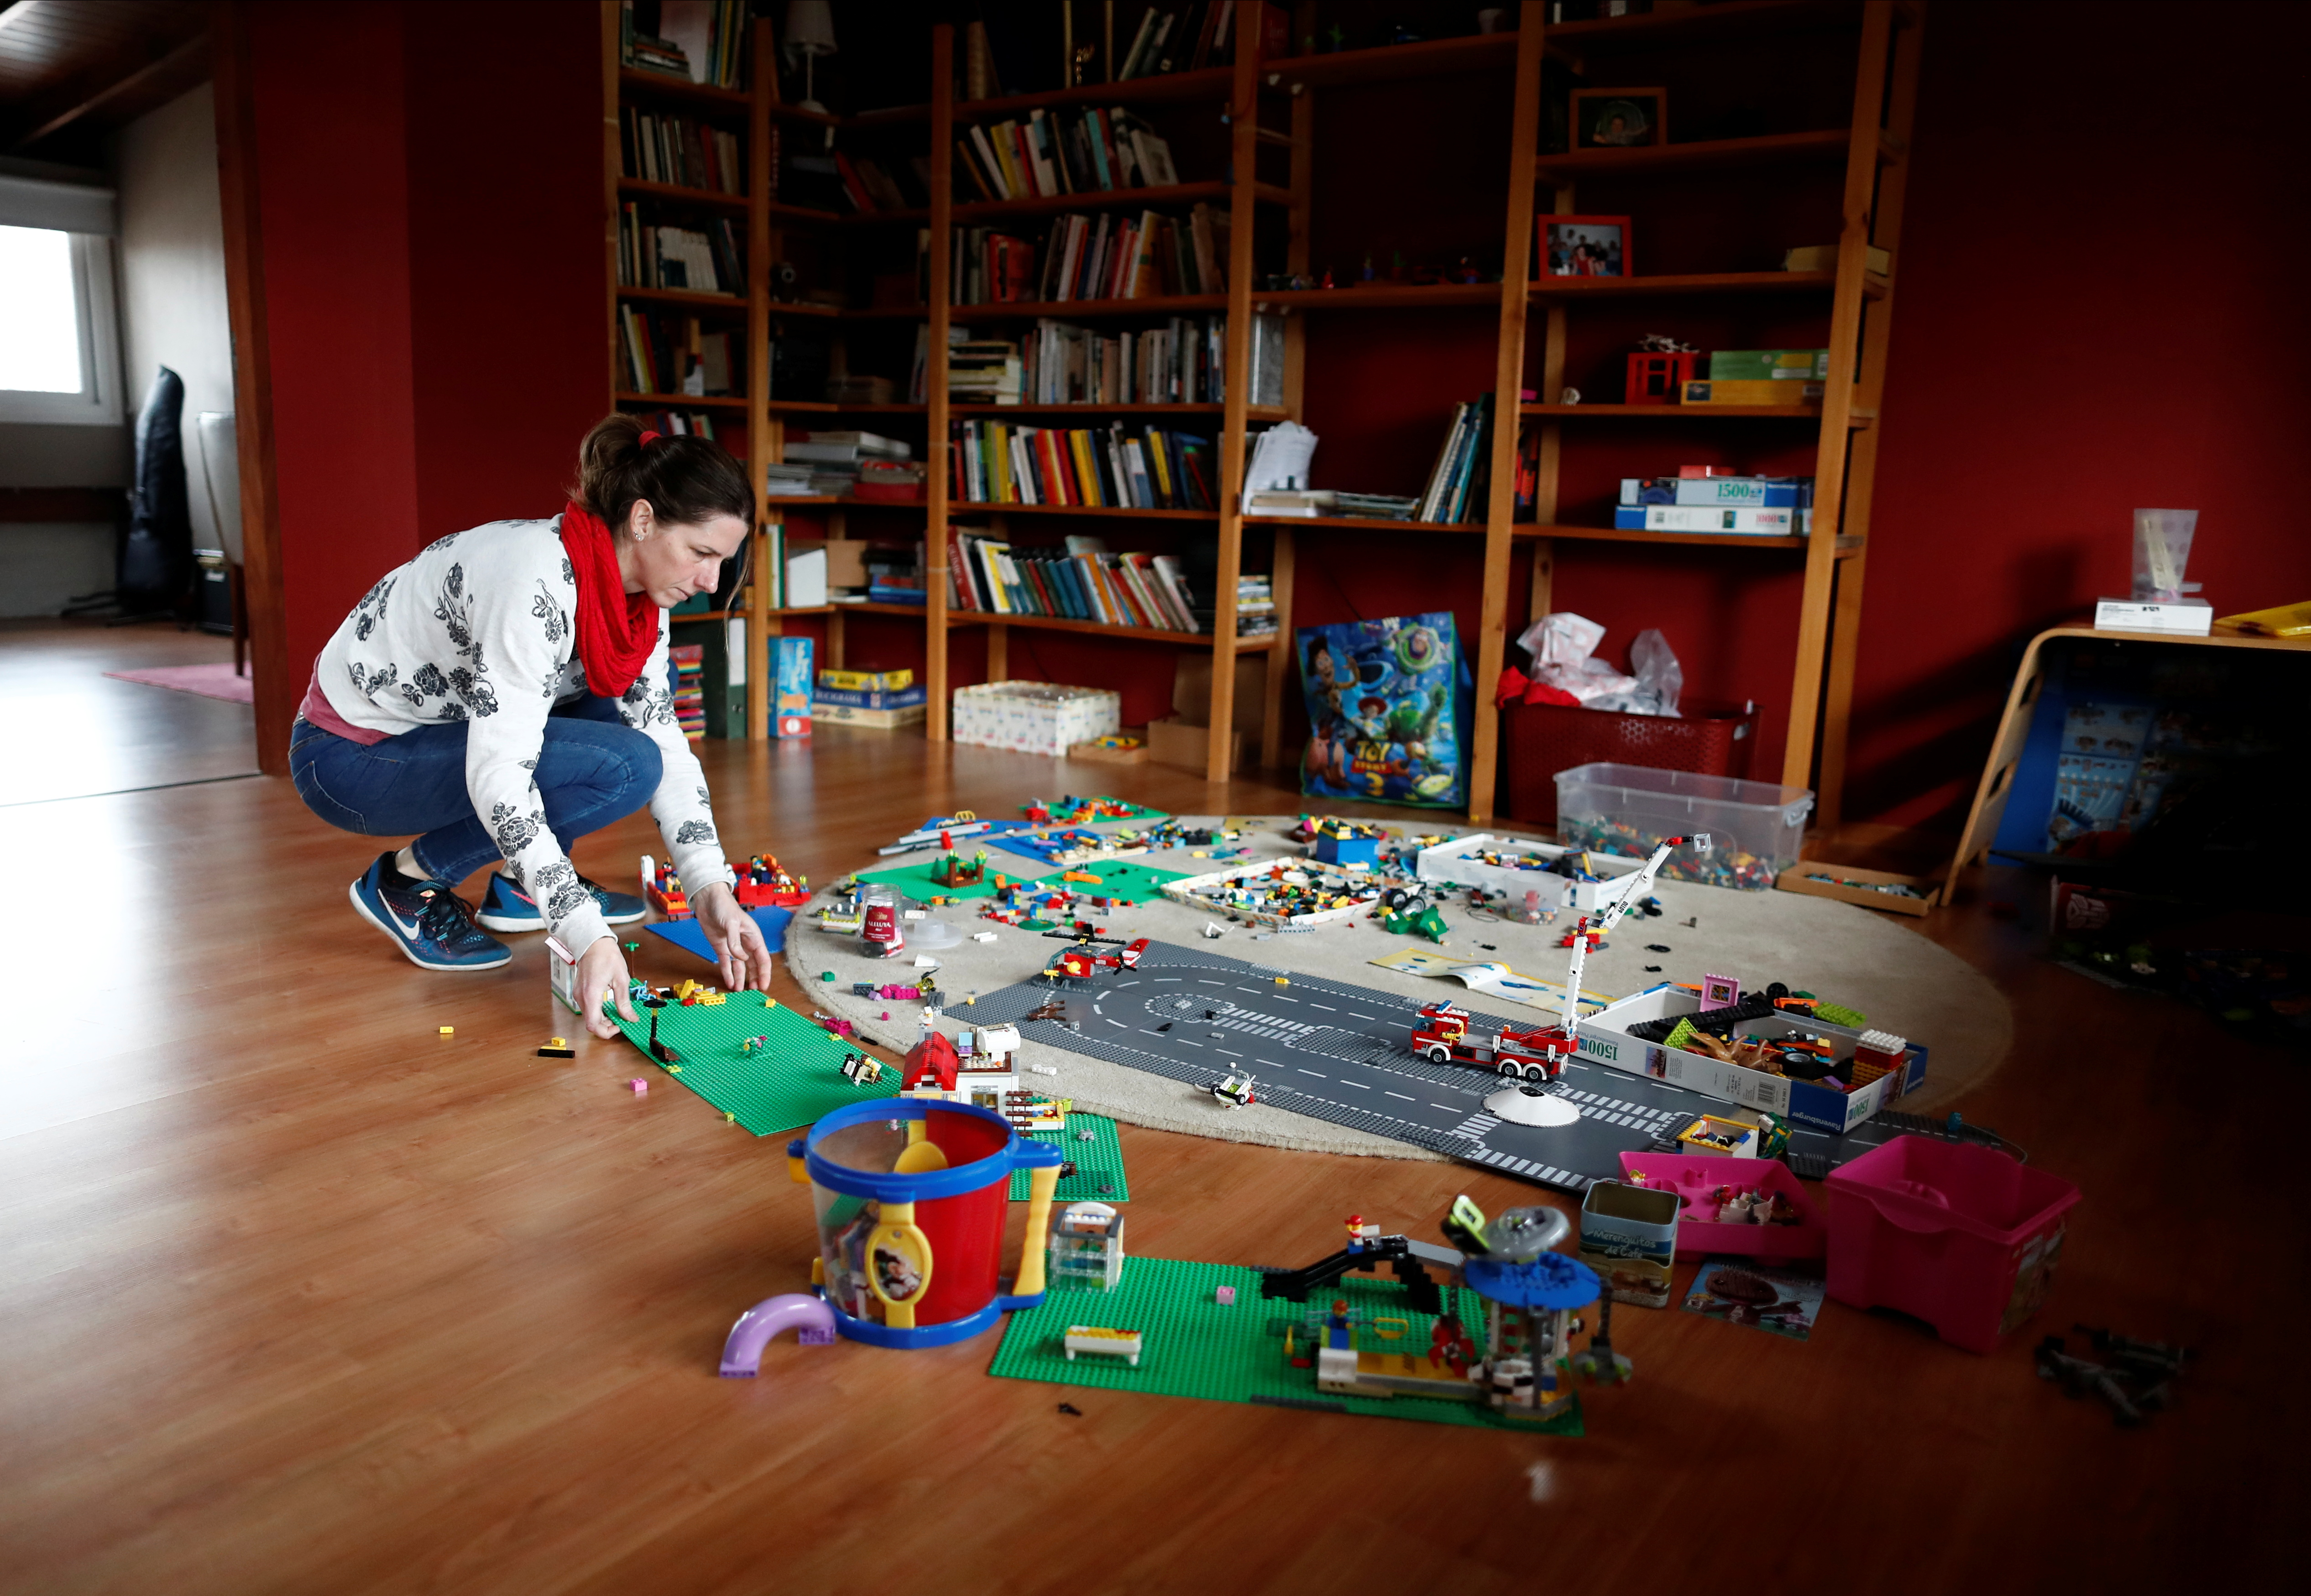 Barbara Temperley, 42, picks up her children's toys during a break from her home office, in Buenos Aires, Argentina September 6, 2021.  Latin America's mothers are lagging behind in the pandemic of economic recovery, returning to the labor force more slowly than men, in a trend that experts say could set back female labor force participation for a decade across the region. Picture taken September 6, 2021. REUTERS/Agustin Marcarian